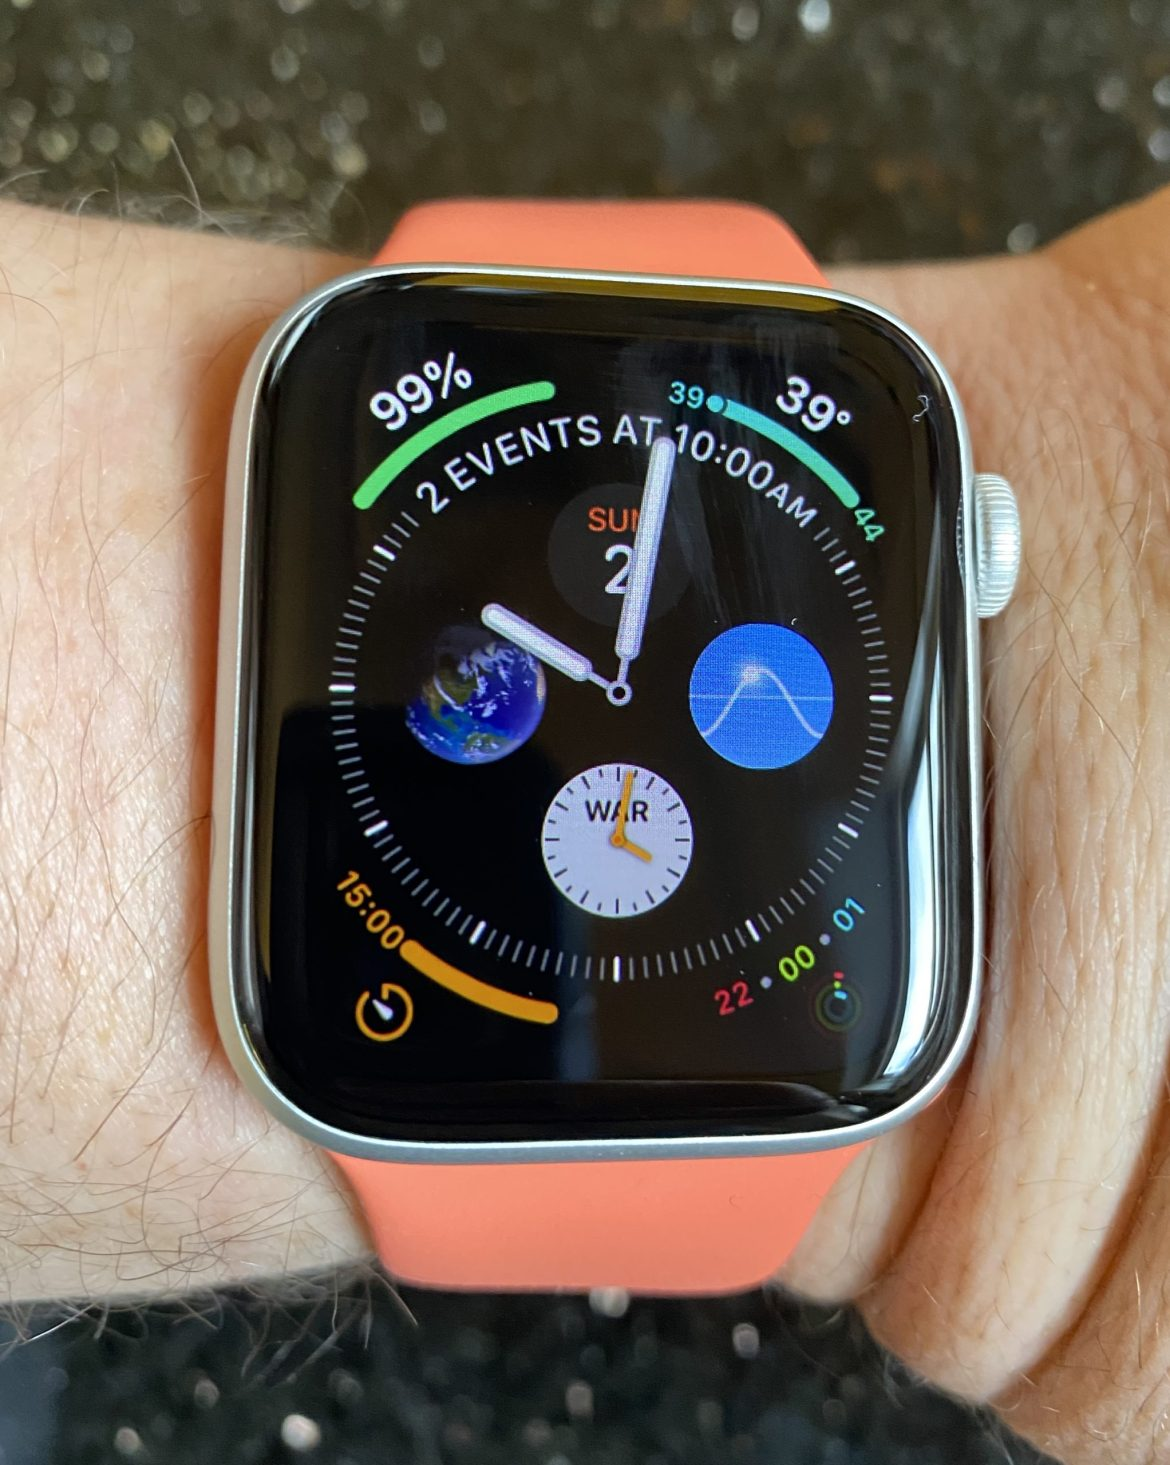 Apple makes the ugliest watch faces on the planet